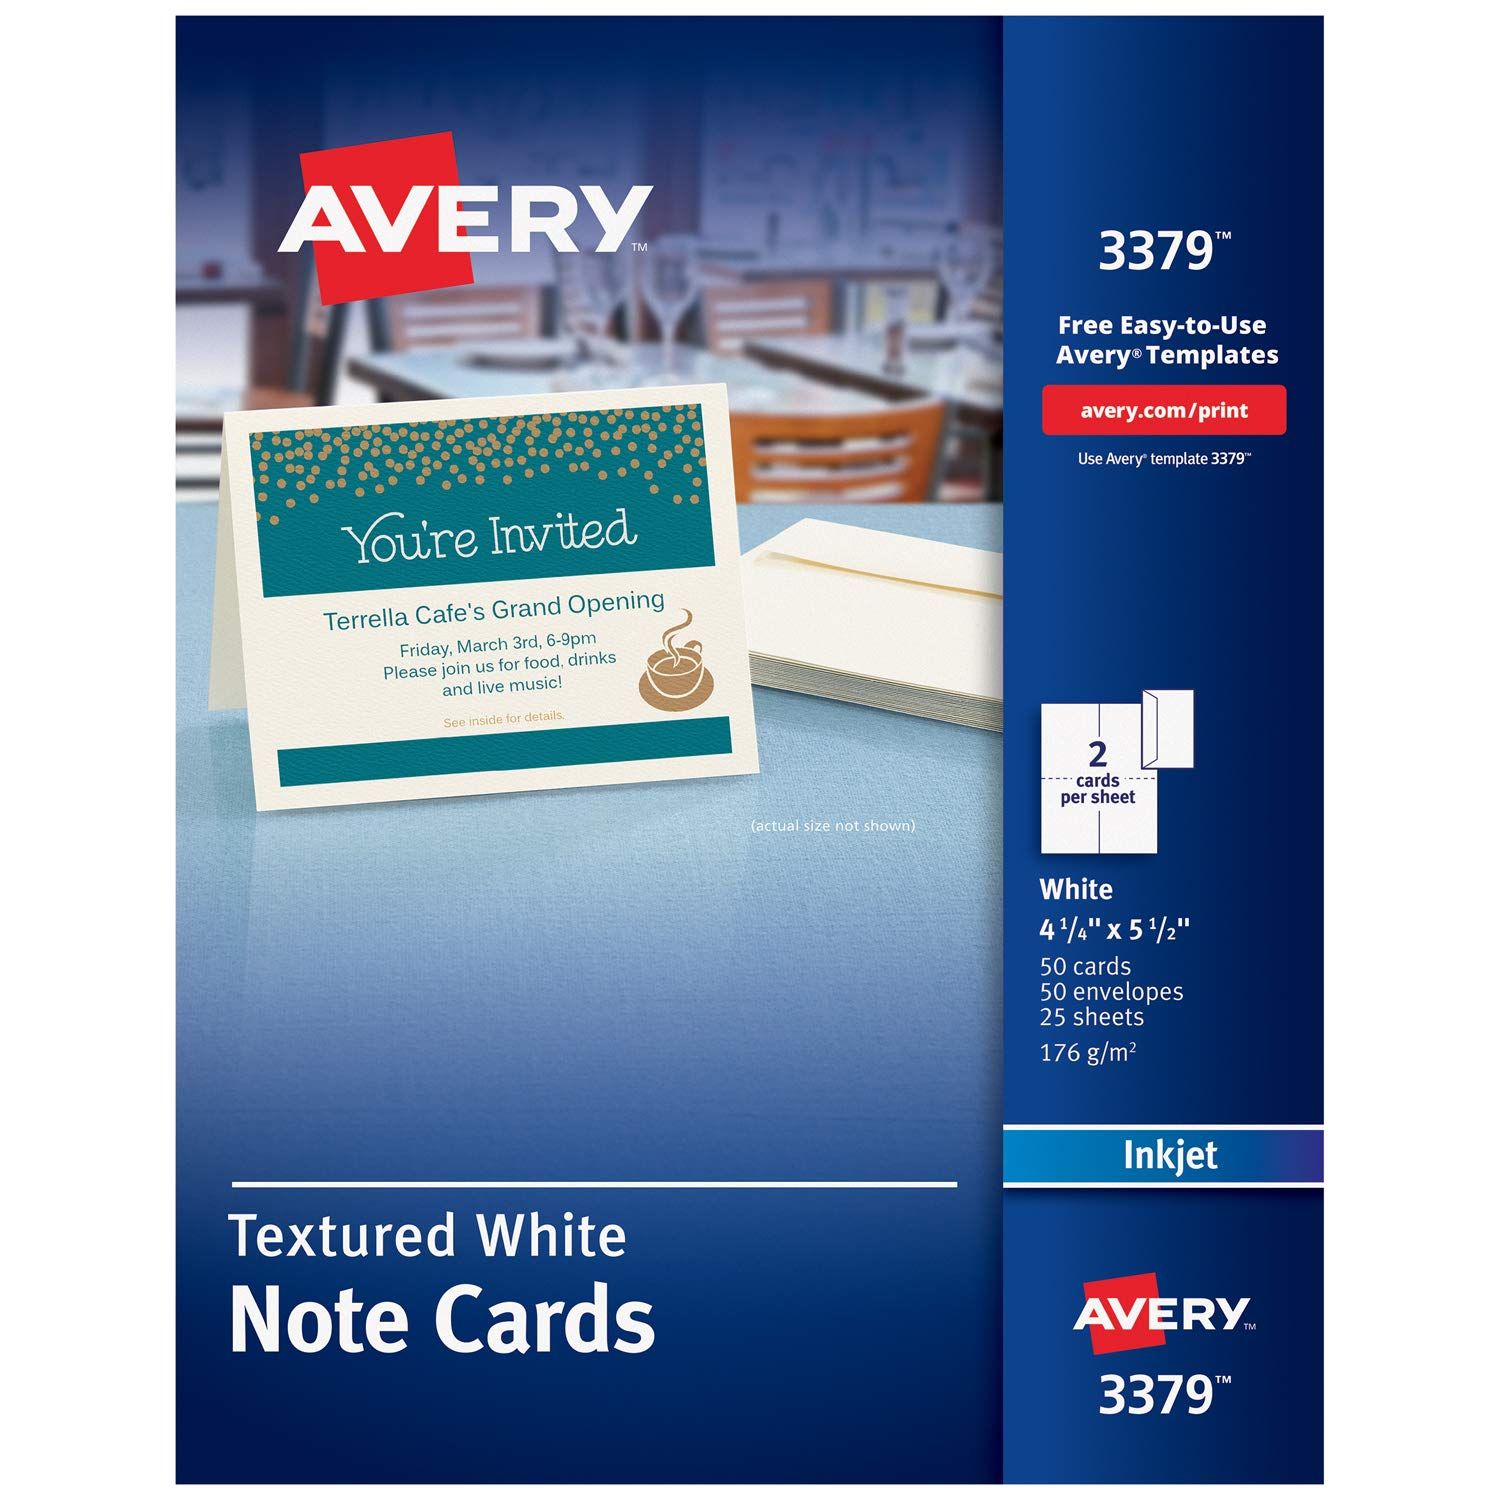 Amazon Avery Printable Note Cards Inkjet Printers 50 Cards